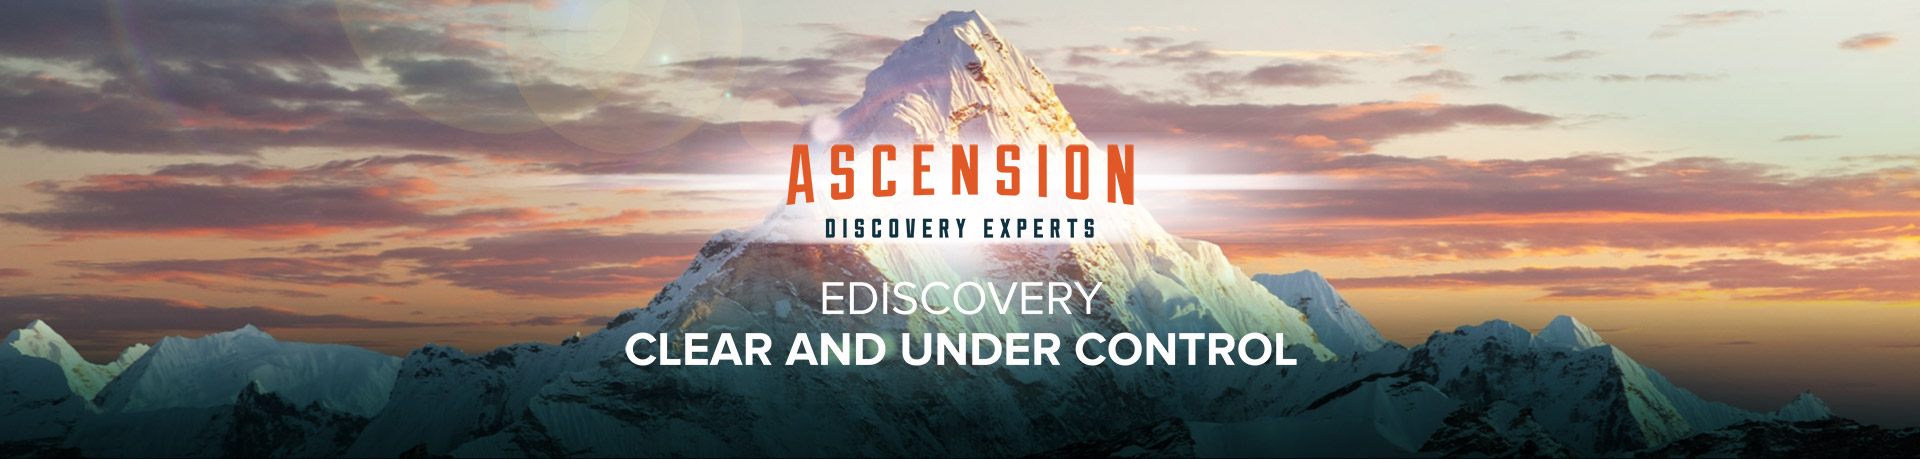 Ascension Discovery Experts hero image of a mountain with clouds in the background and the ADE logo in the fore-ground